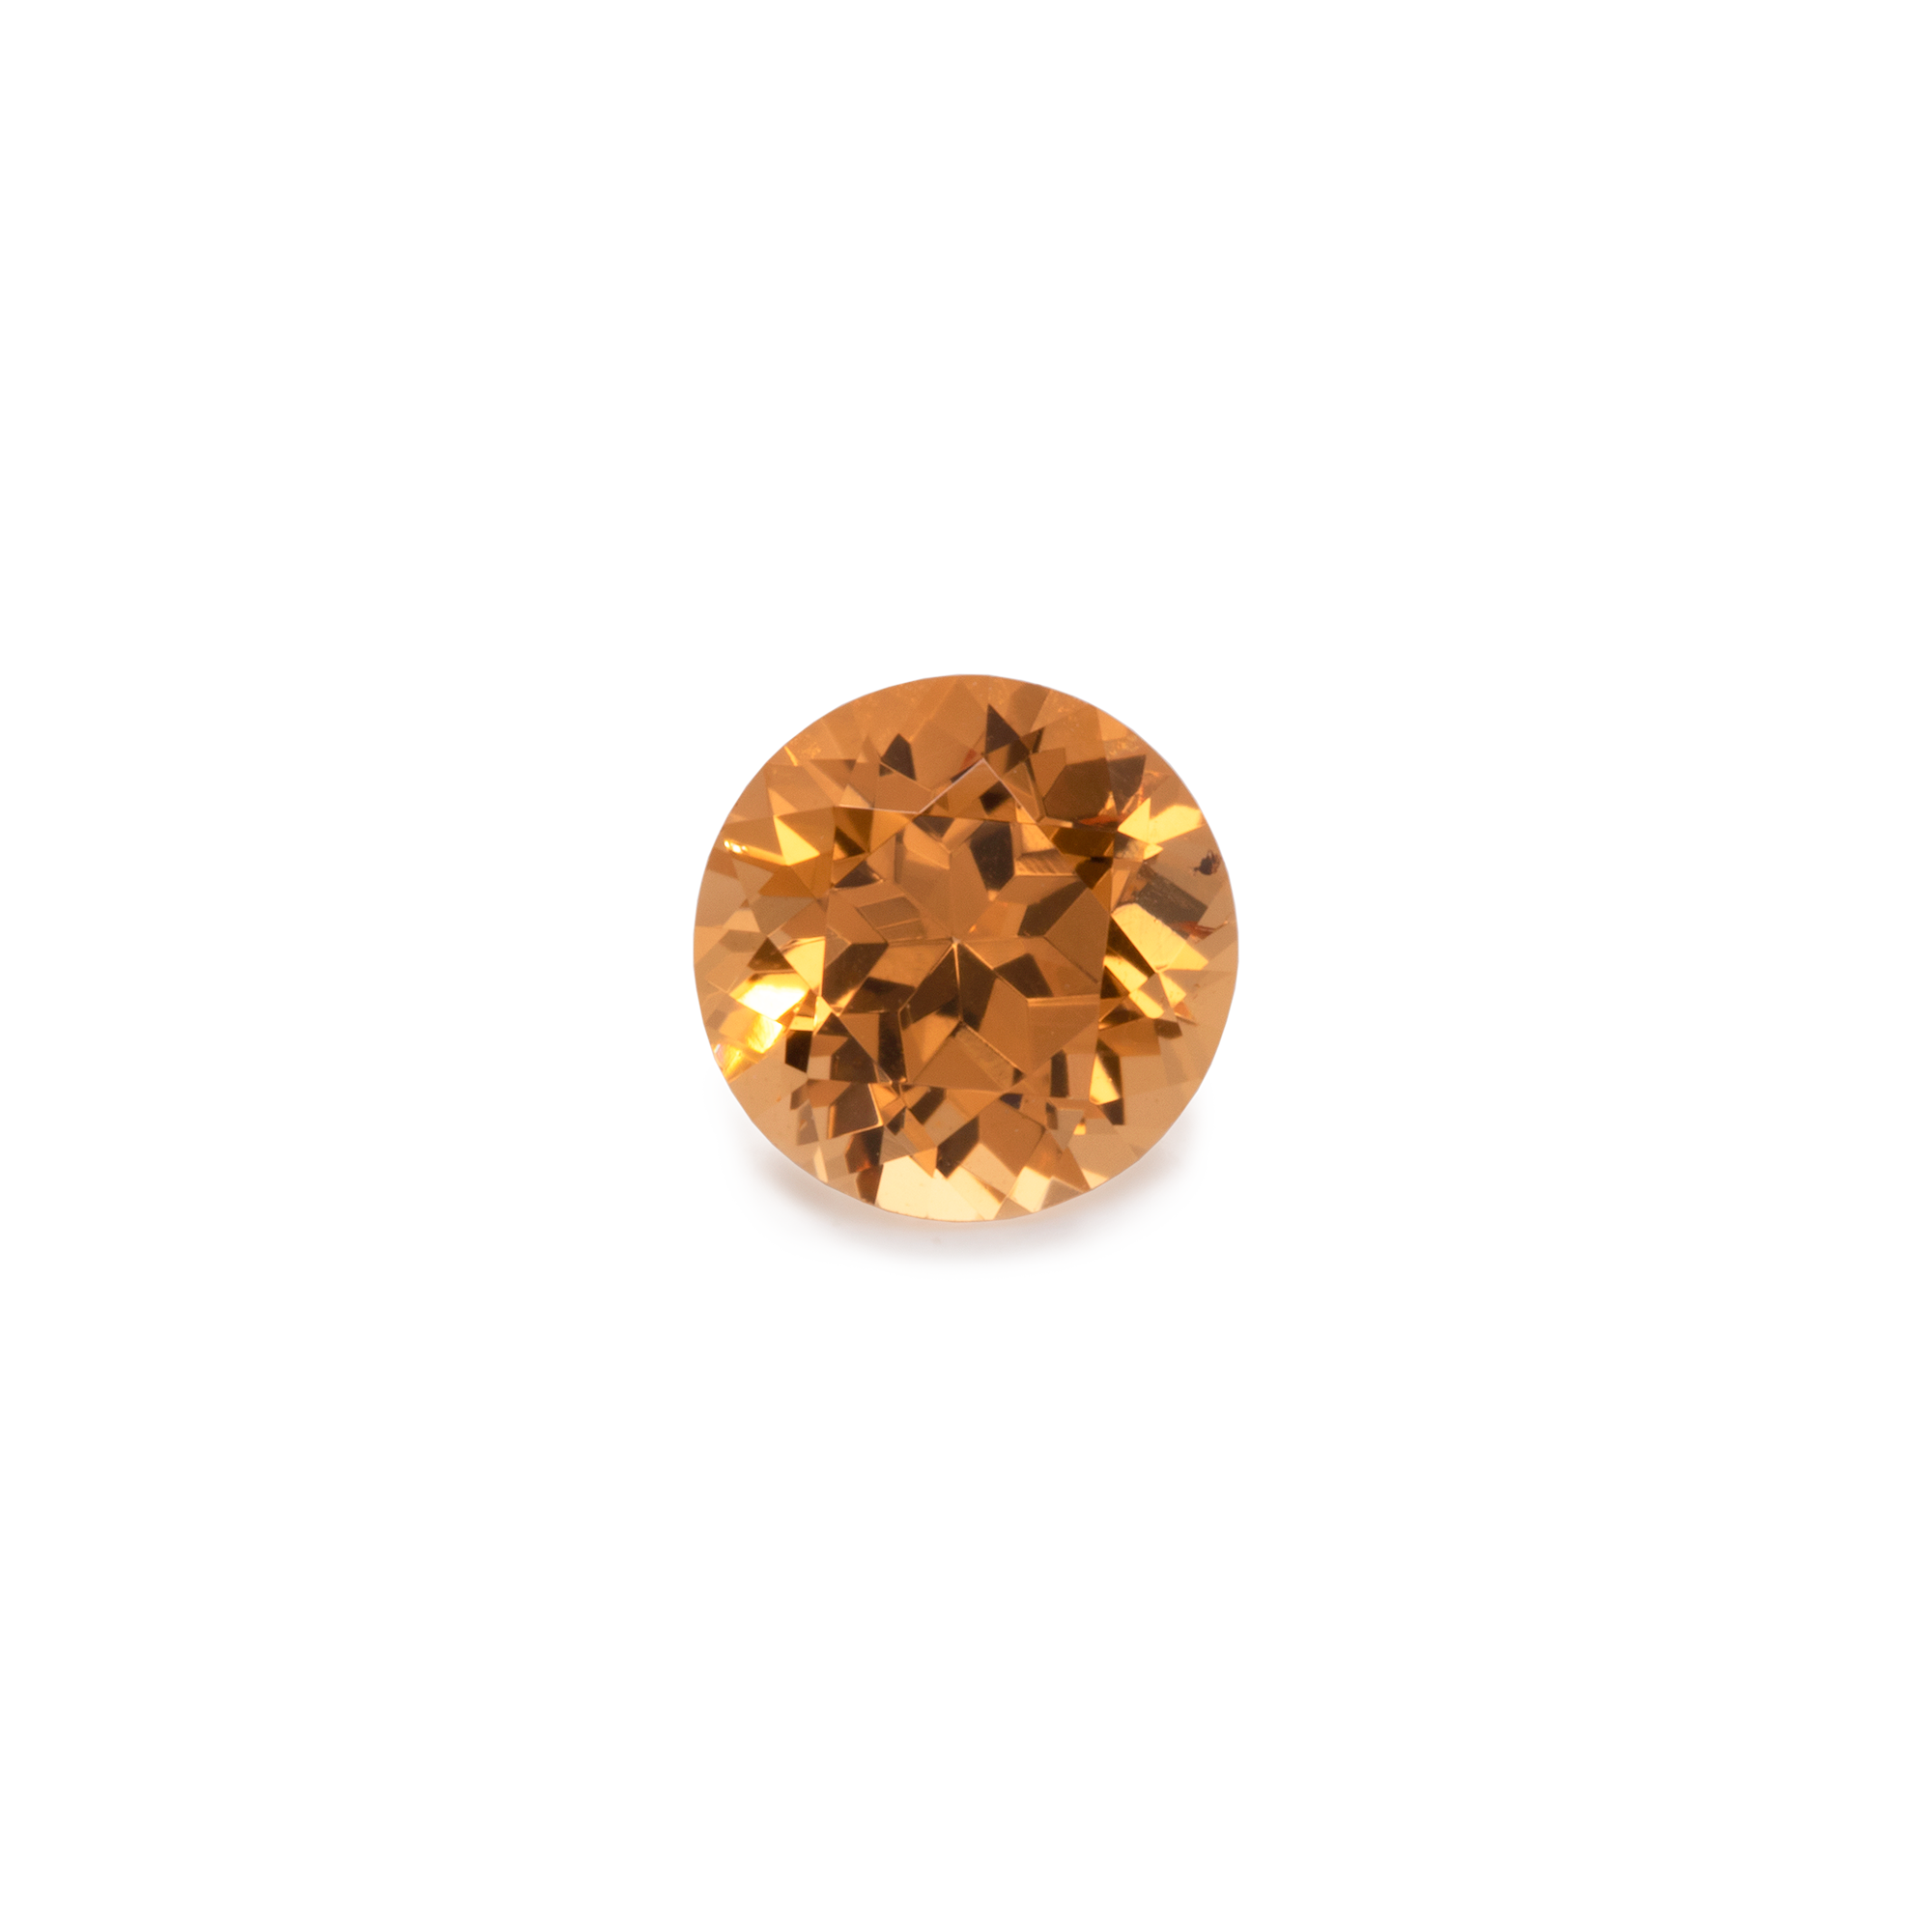 Mandarin Granat - orange, rund, 4x4 mm, 0,3-0,37 cts, Nr. MG70001